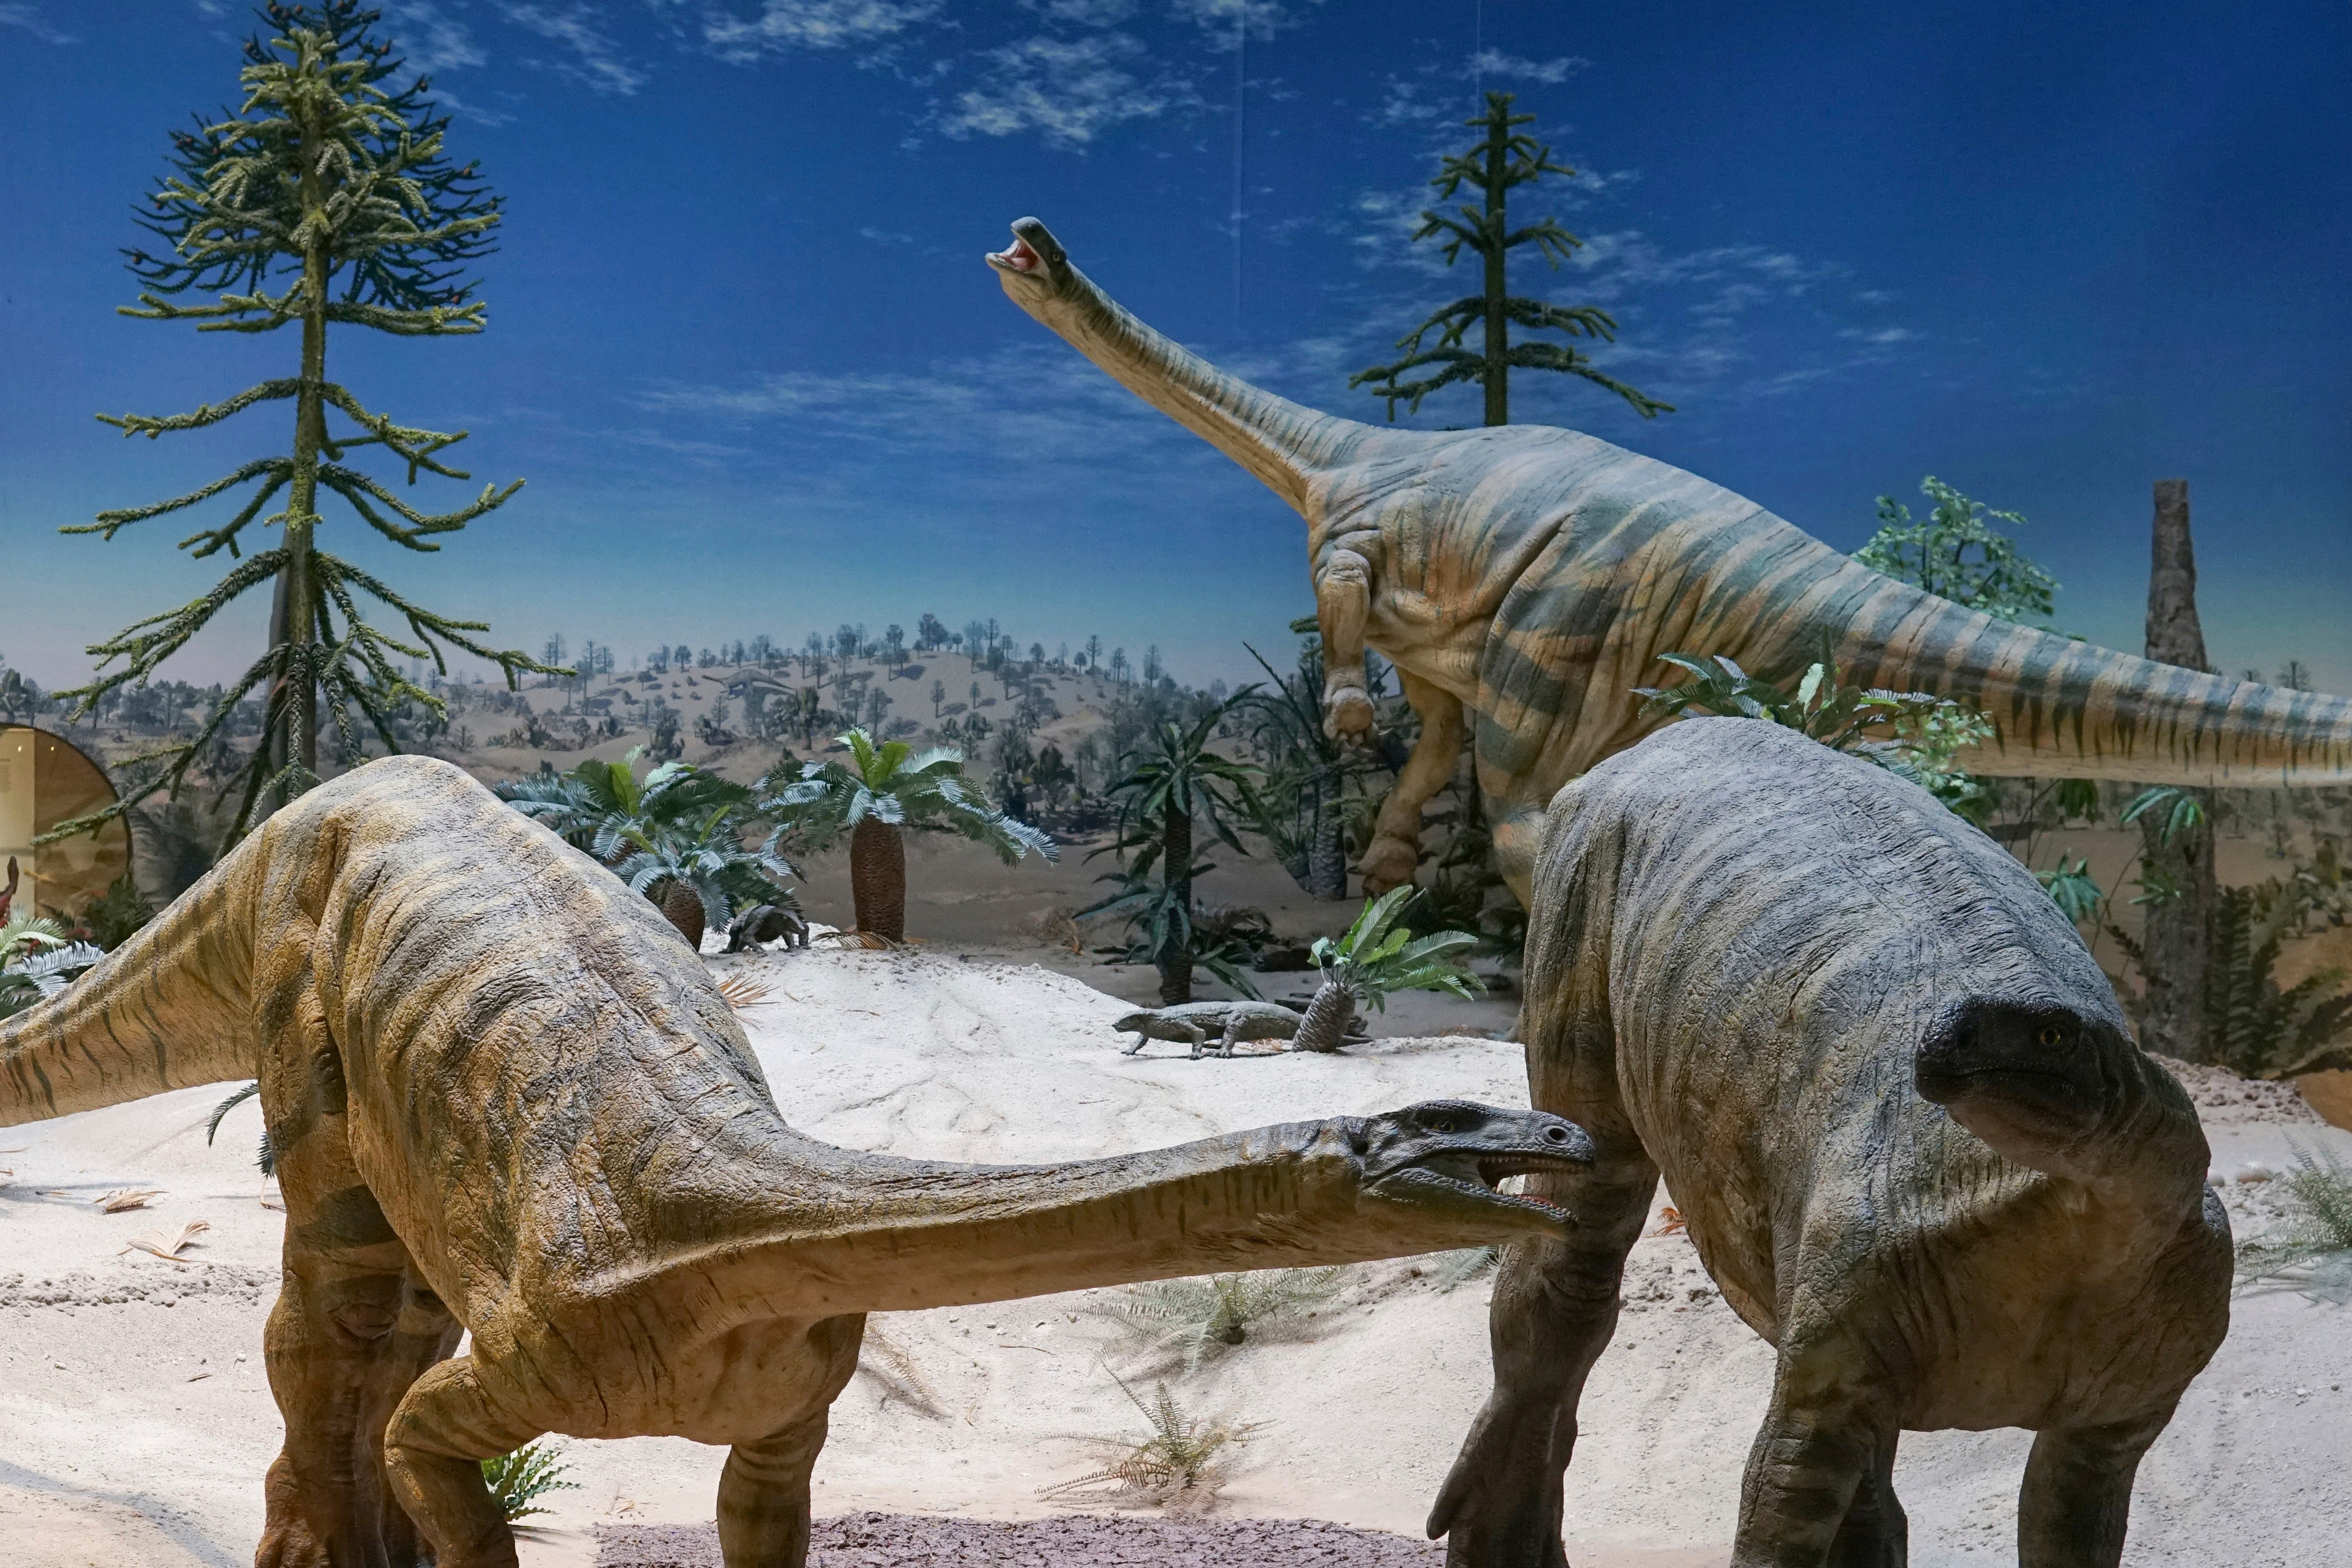 This photo provided by Randall Irmis shows Plateosaurus models at the State Museum of Natural History in Stuttgart, Germany. Plant-eating dinosaurs such as these probably arrived in the Northern Hemisphere many millions of years later than their meat-eating cousins.(AP)